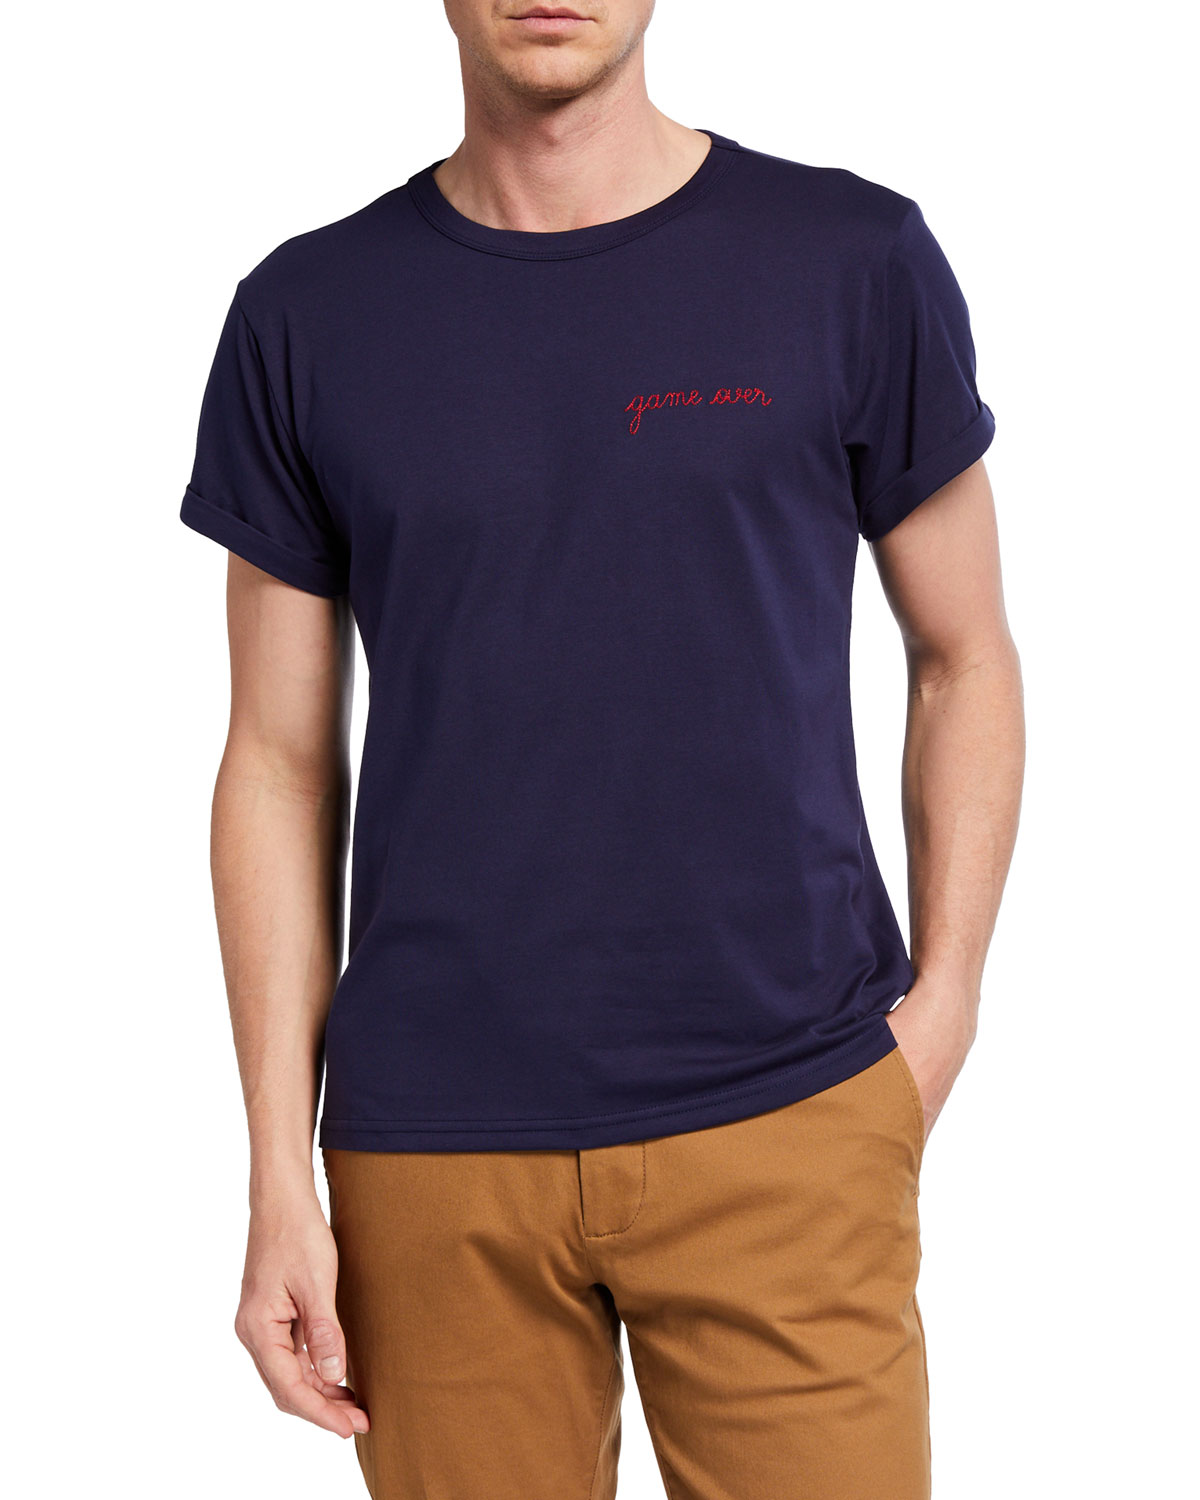 Maison Labiche Men's Classic T-Shirt -  Game Over